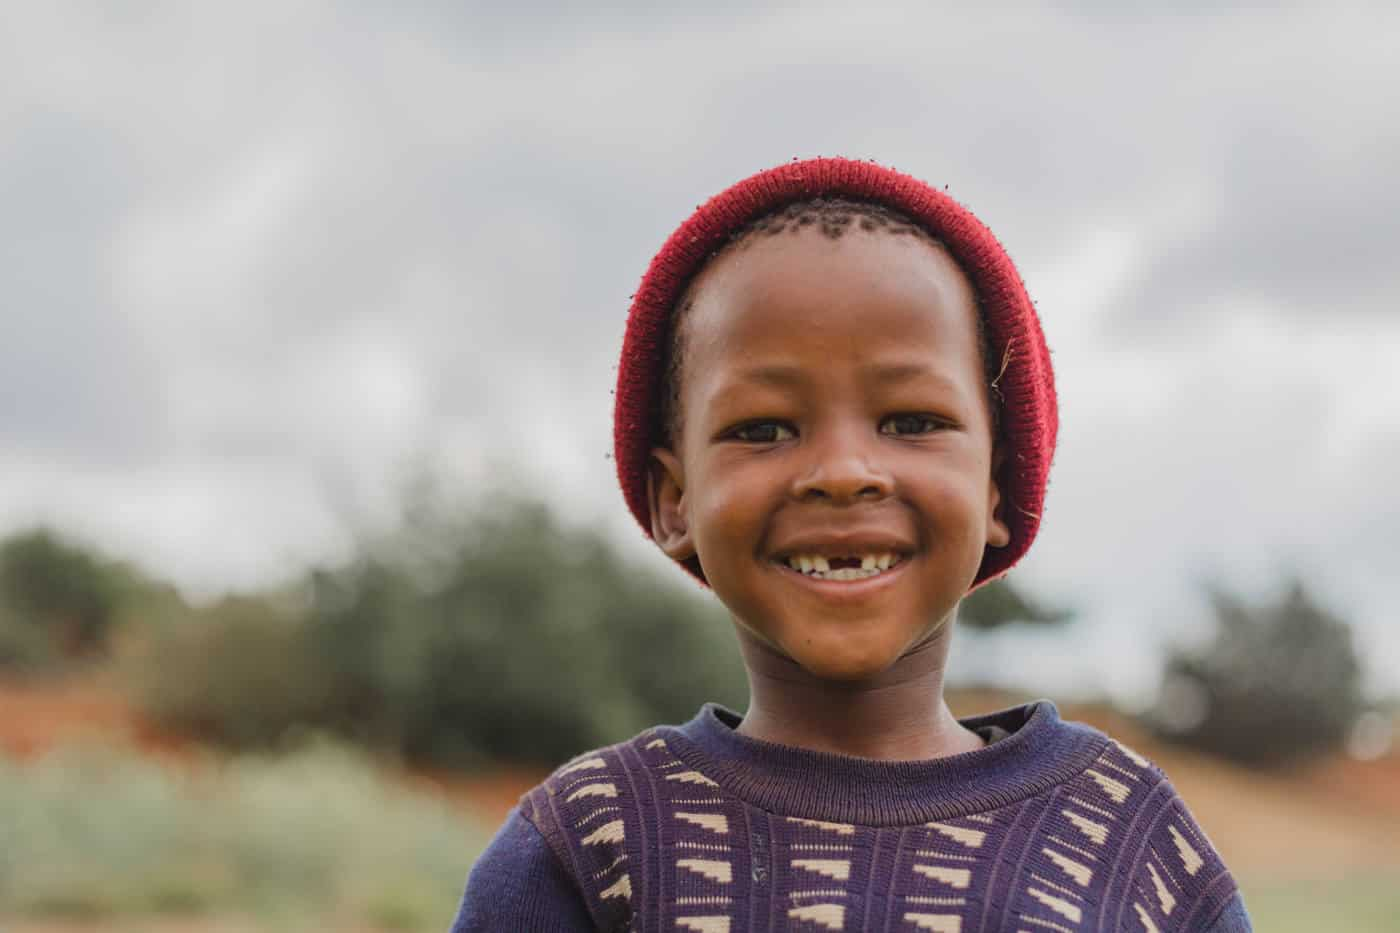 Pictures of Lesotho boy